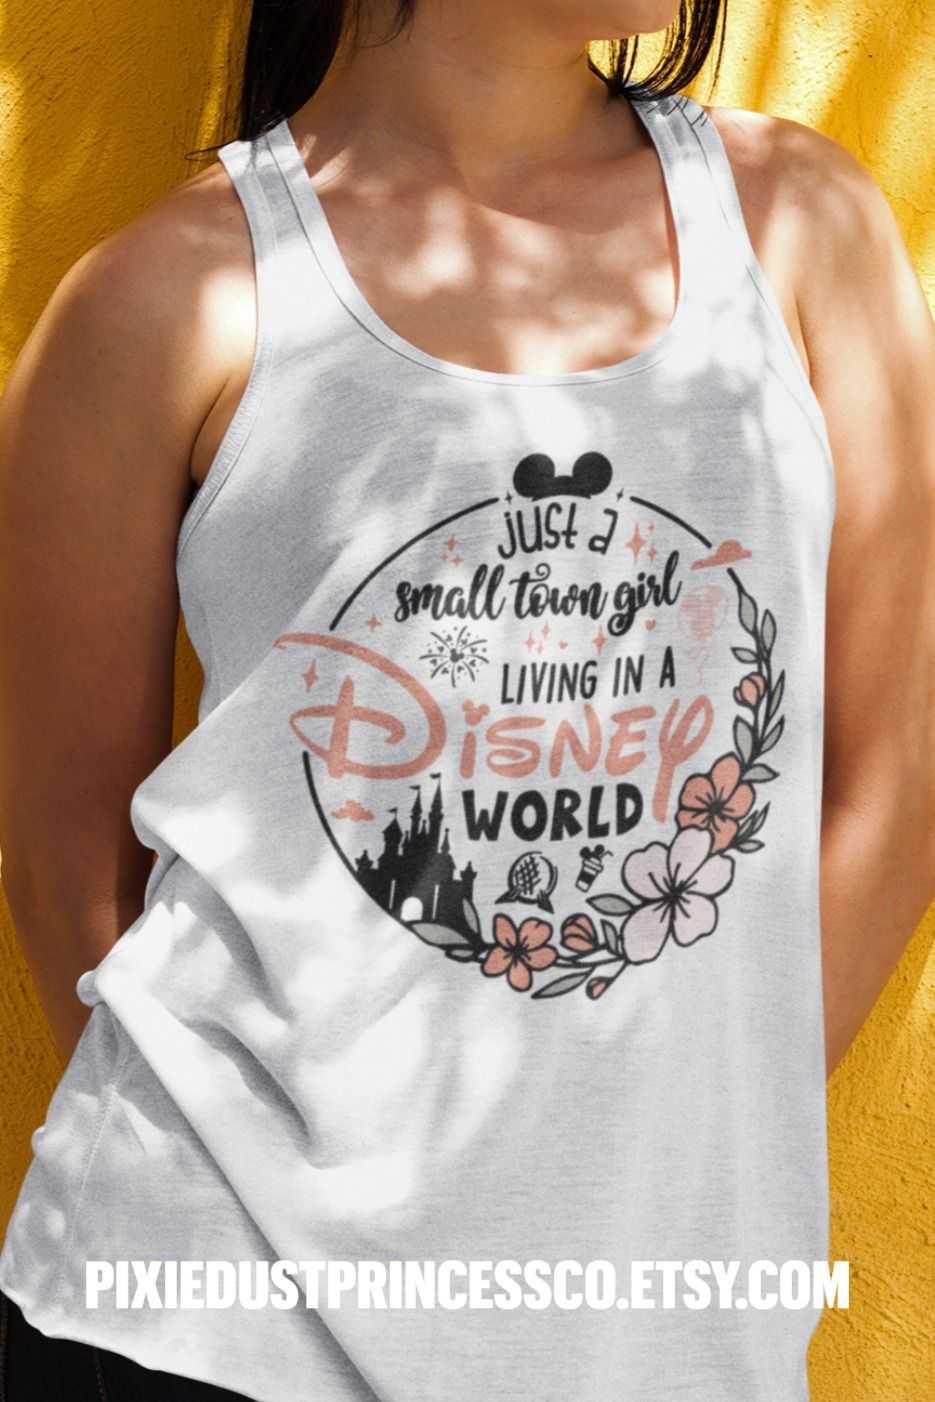 Disney Tank Top for Women- Just a Small Town Girl Living in a Disney World!